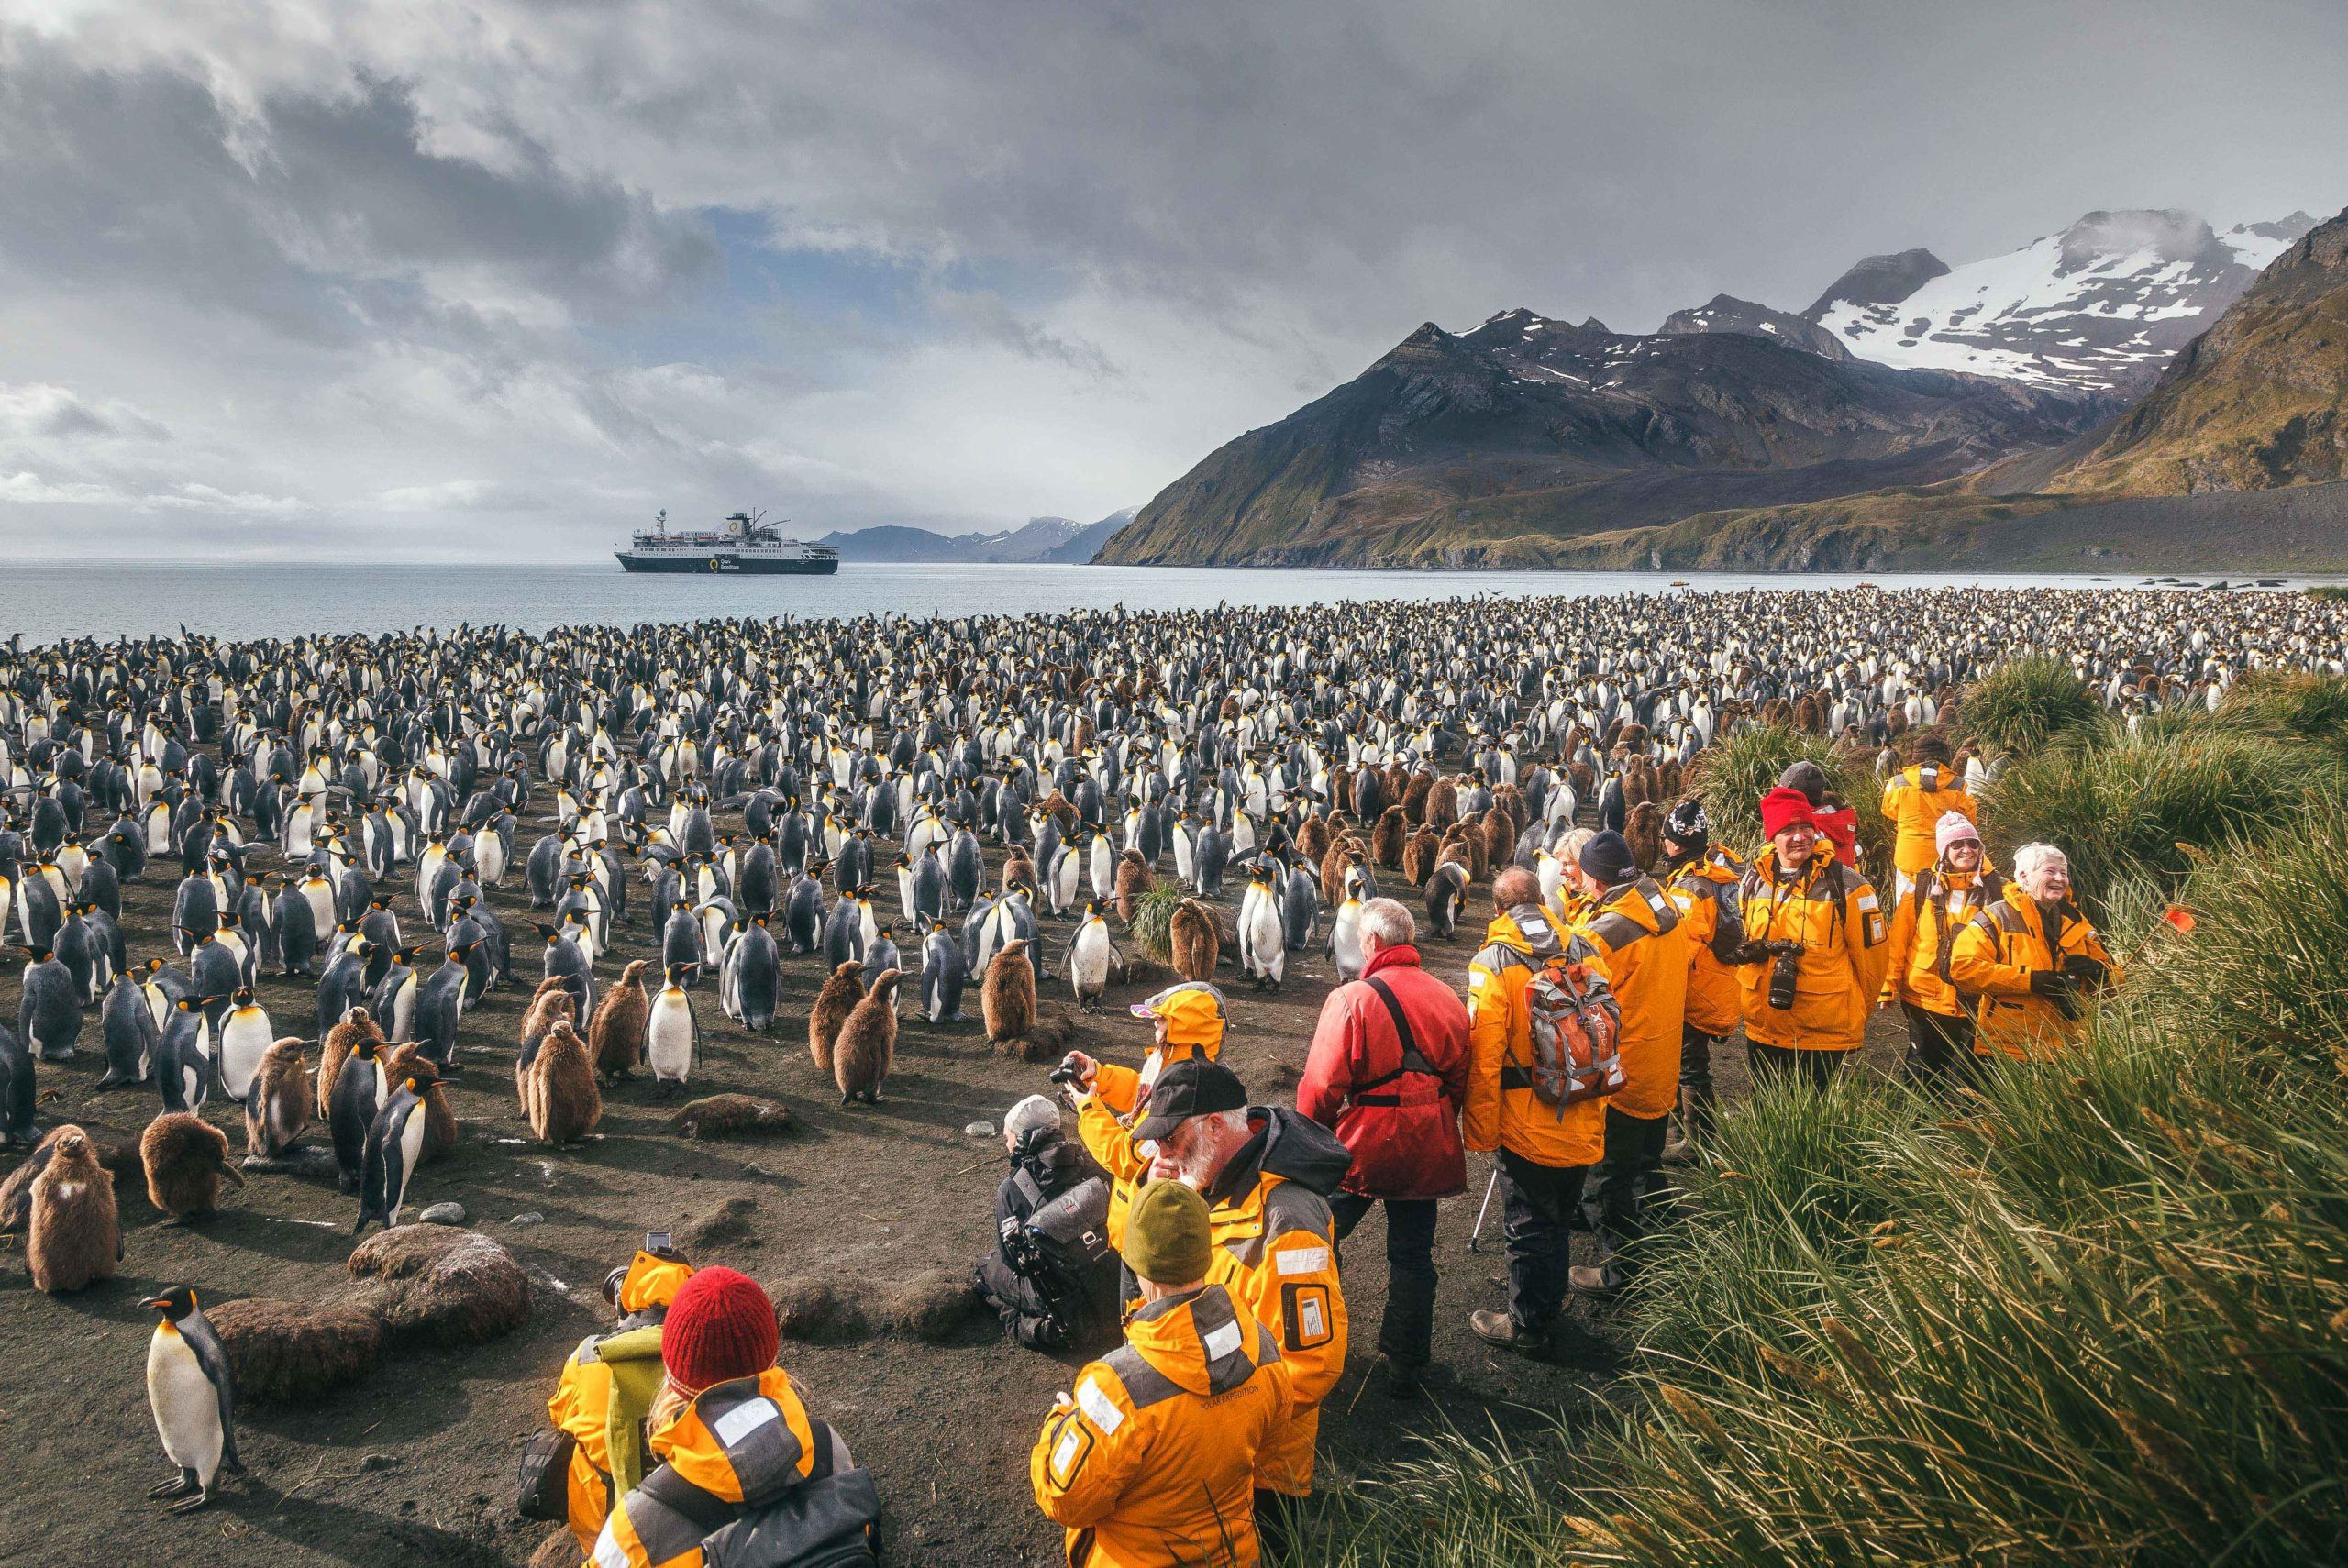 colony of King penguins on the beach of South Georgia, guests in yellow jackets taking photos, ship moored in the distance